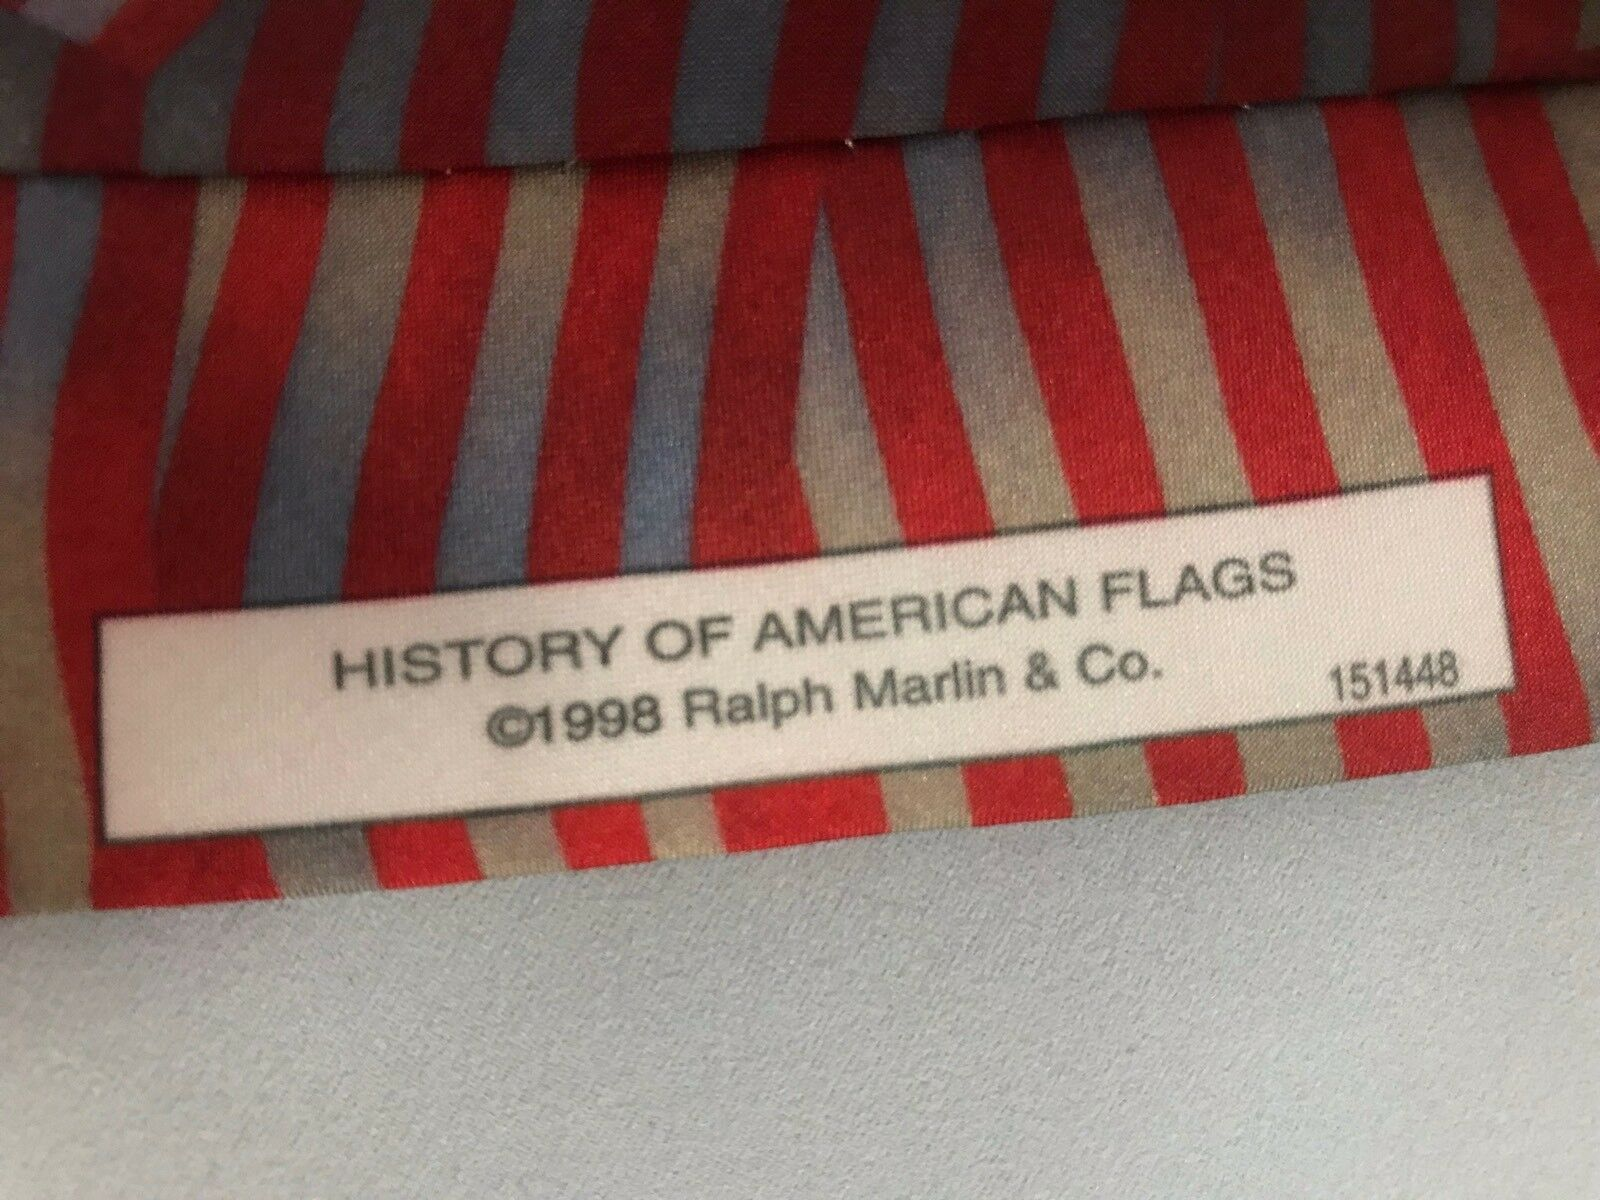 Ralph Marlin History of American Flags Patriotic 4th of July Neck Tie 1998 USA image 4